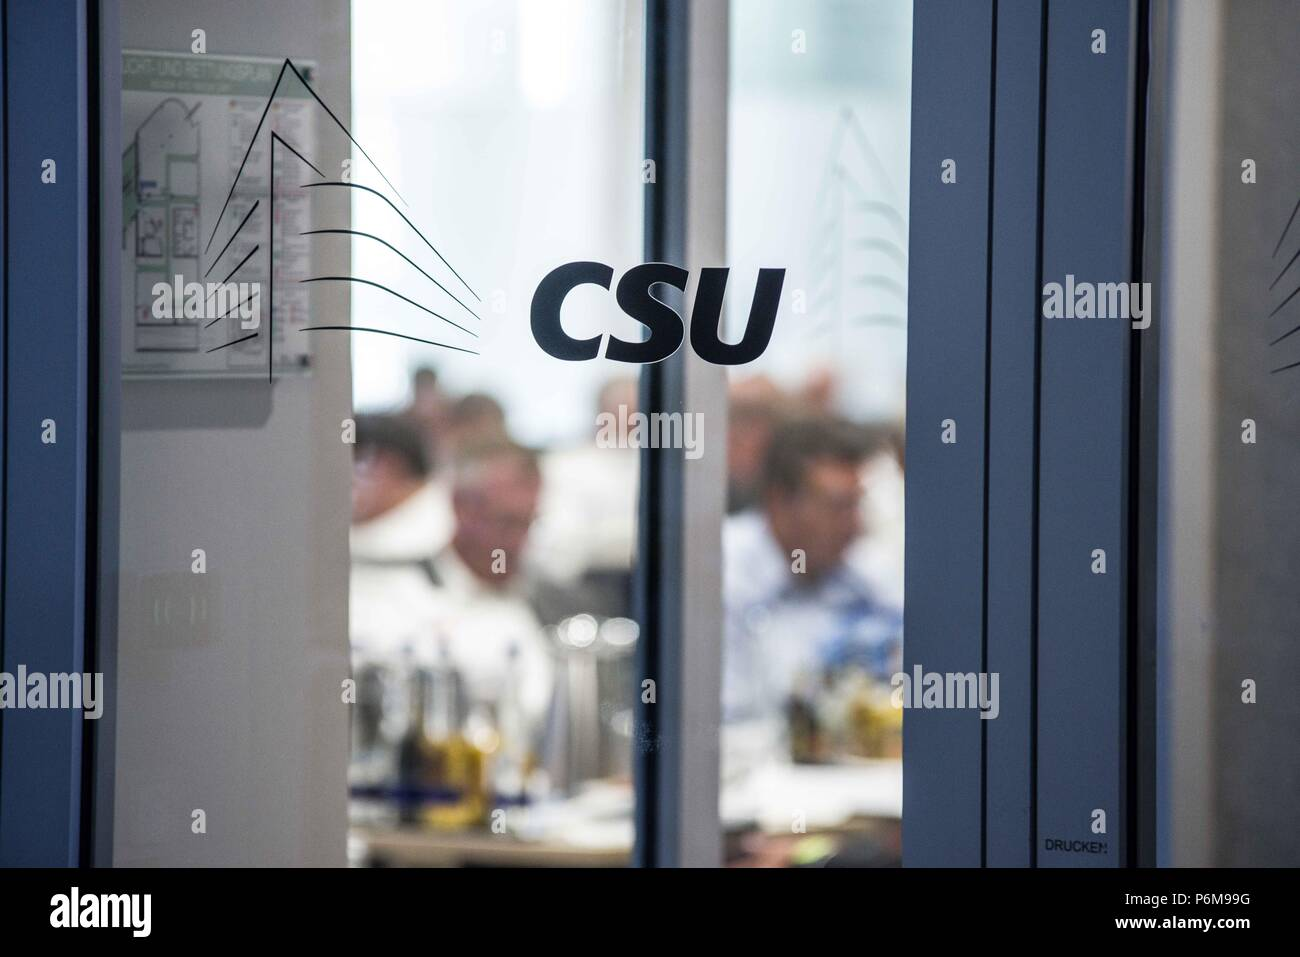 Munich, Bavaria, Germany. 1st July, 2018. Officials of the Bavarian CSU party hold a meeting to determine if the CSU will split from its union with Angela Merkel's CDU, effectively dissolving Germany's government, or if it will continue. The point of difference is regarding the sending of migrants back to the country of their first registration at the German border. Credit: Sachelle Babbar/ZUMA Wire/Alamy Live News - Stock Image